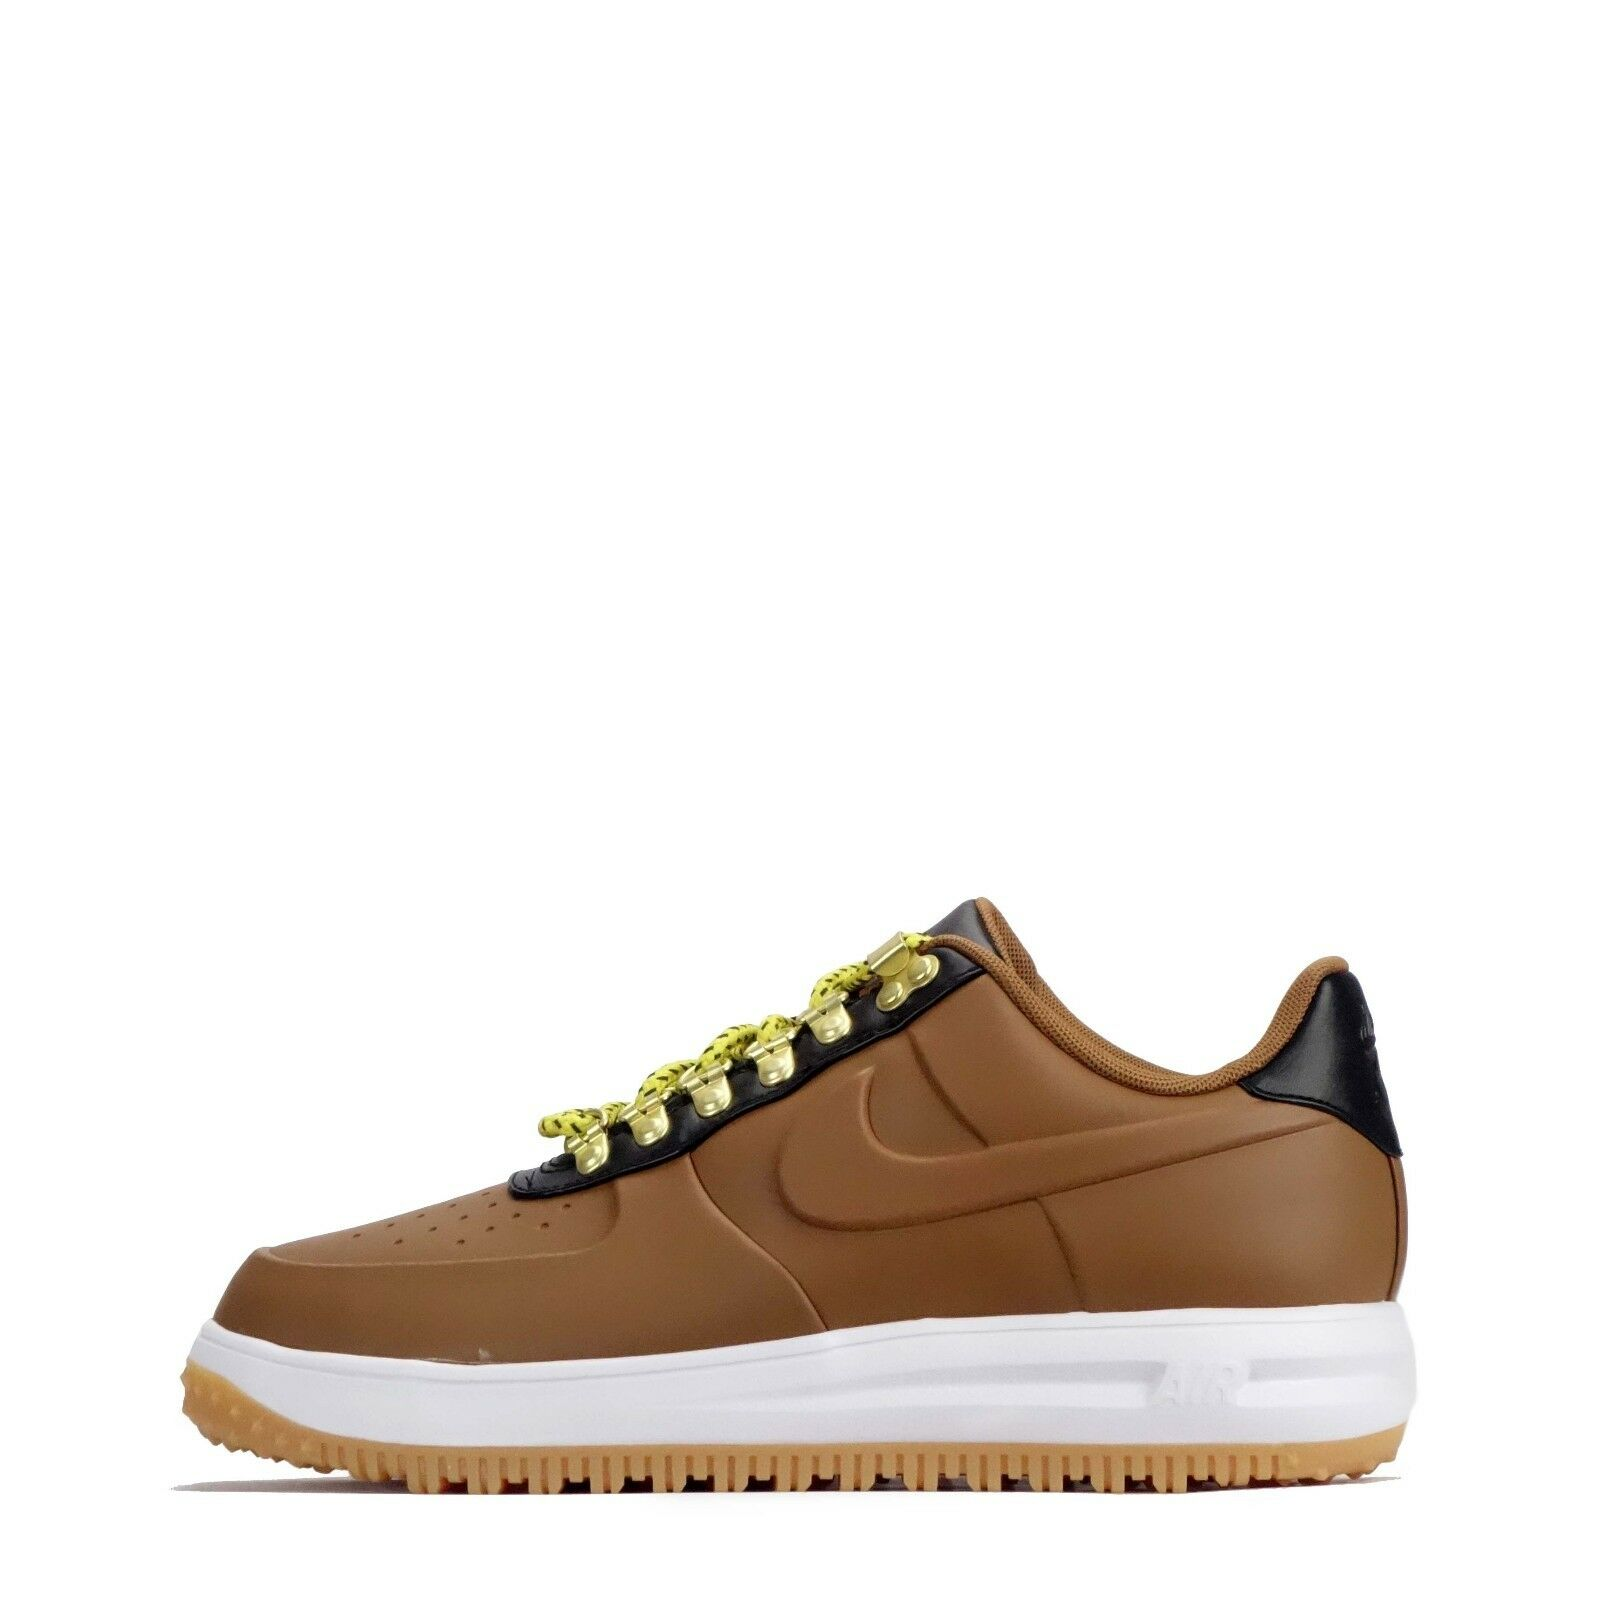 Nike Lunar Force 1 Duckboot Low Men's Leather Shoes in Ale Brown